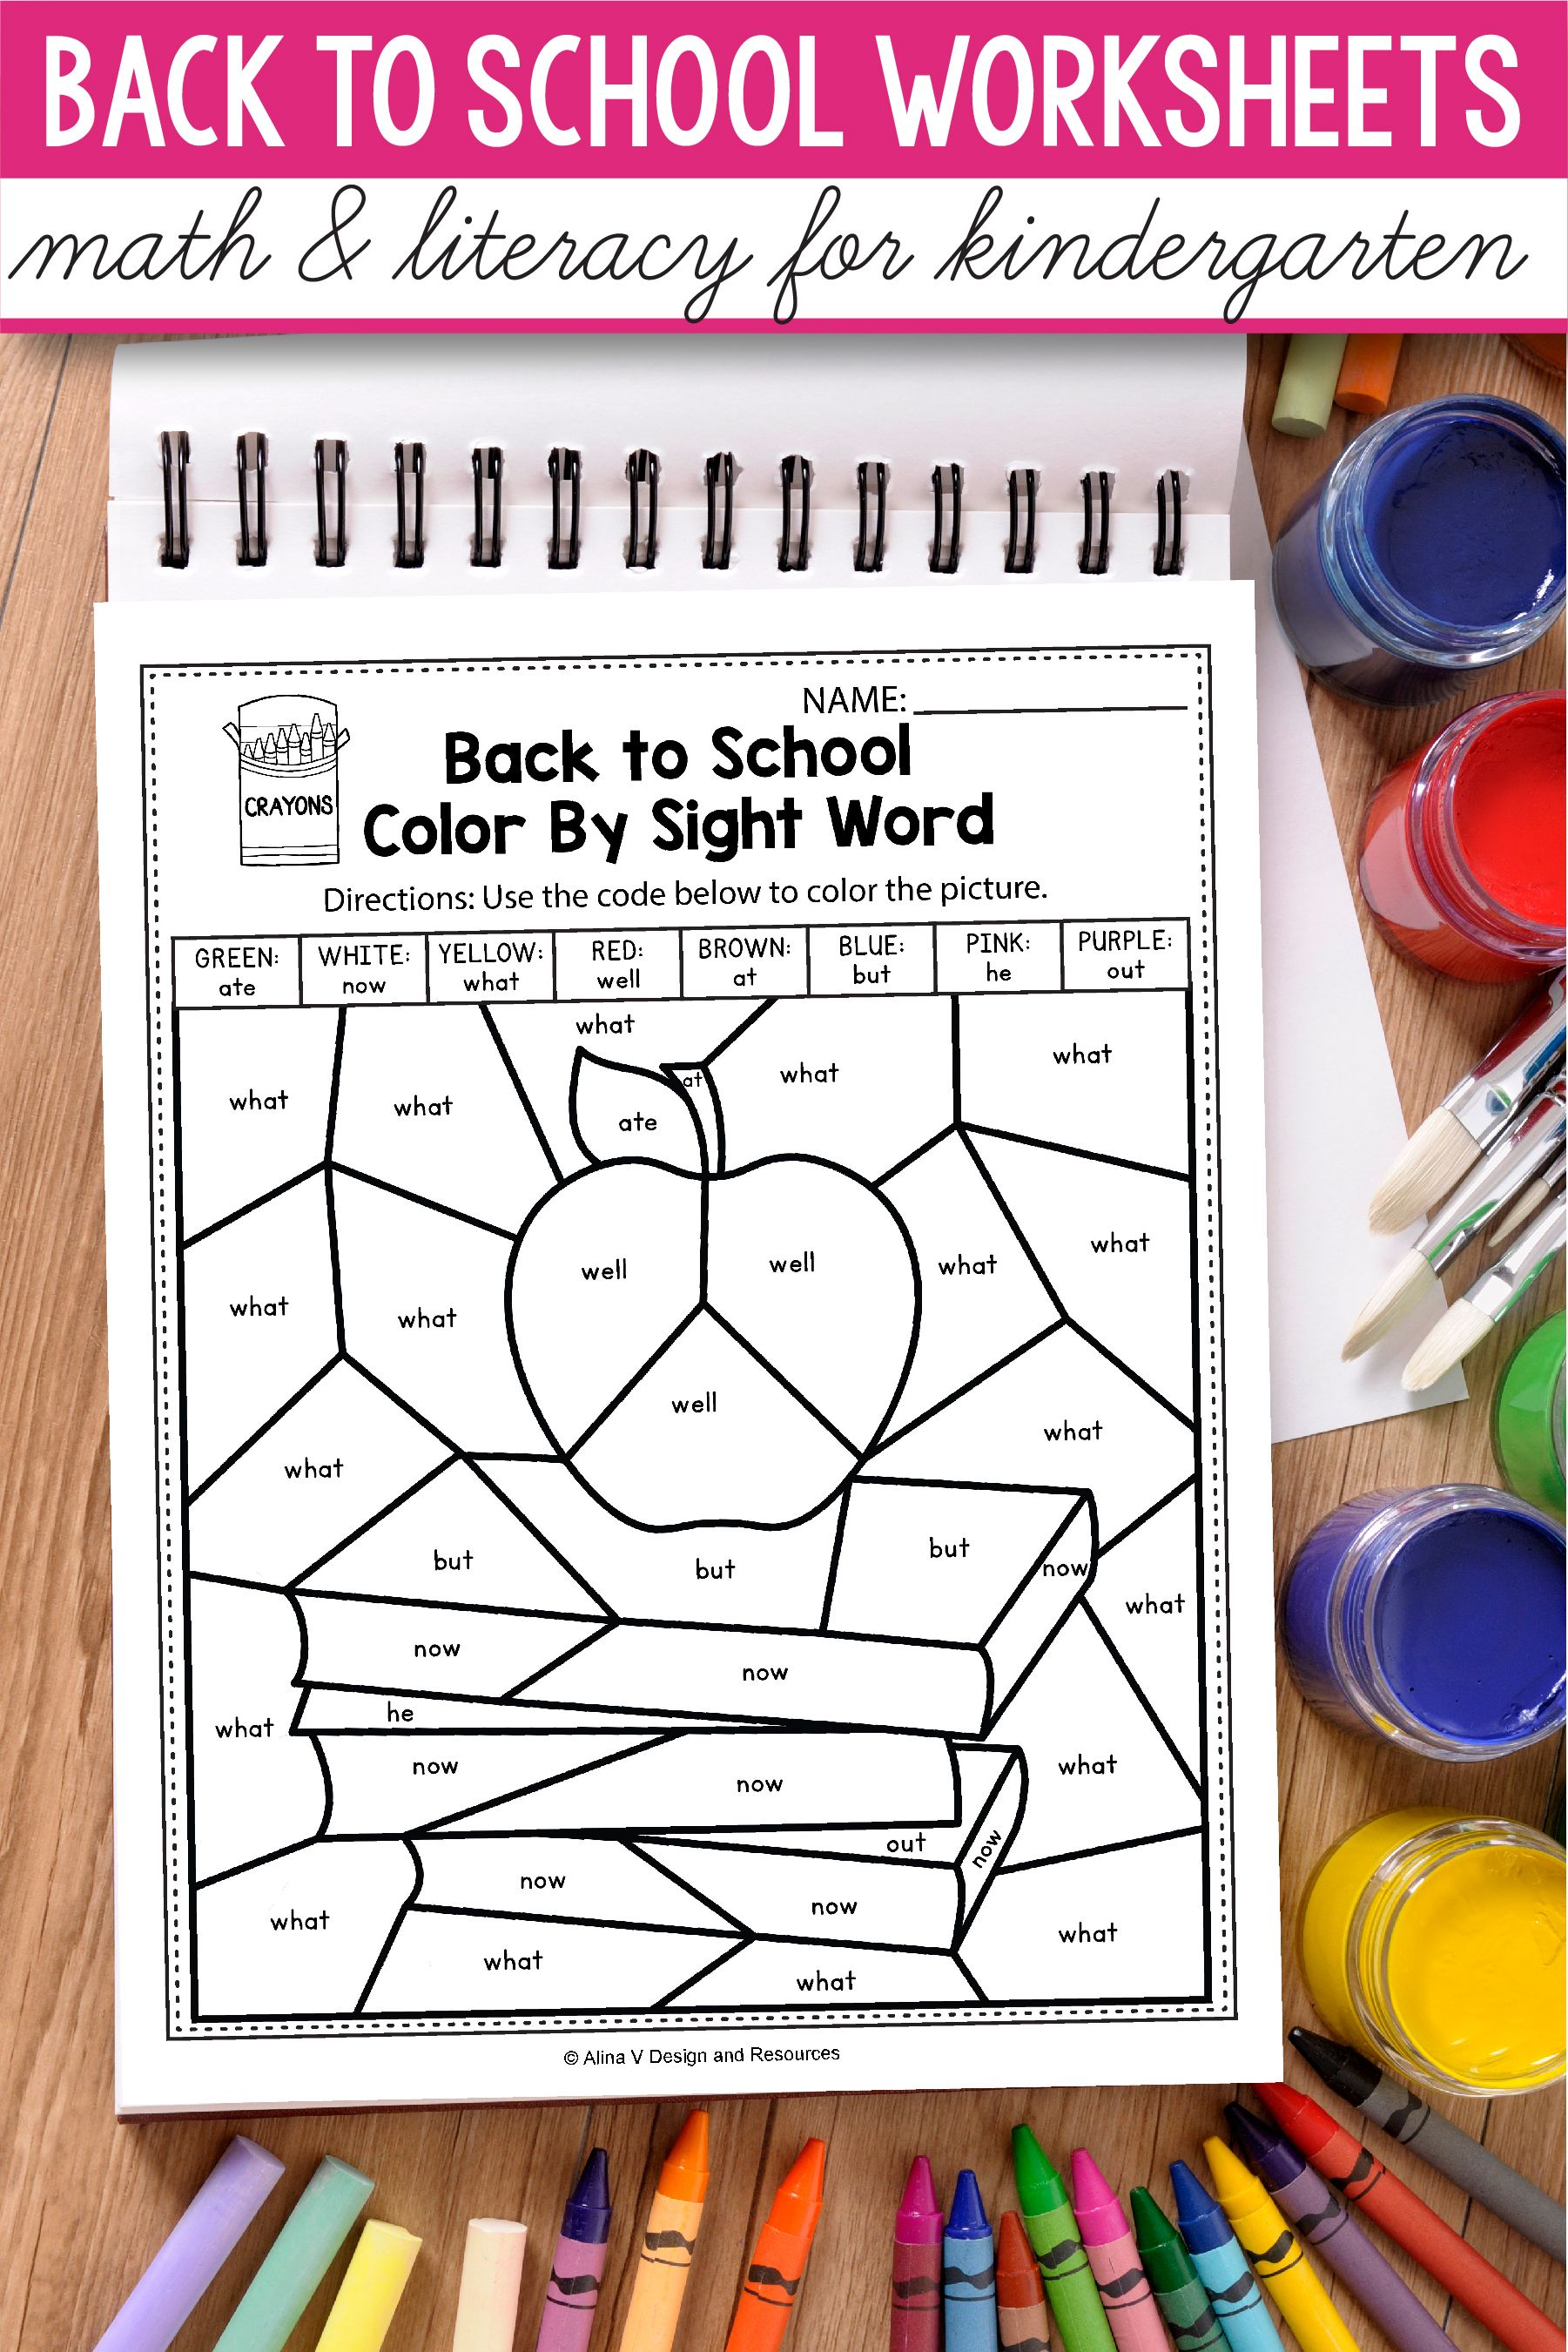 Back To School Math And Literacy Activities For